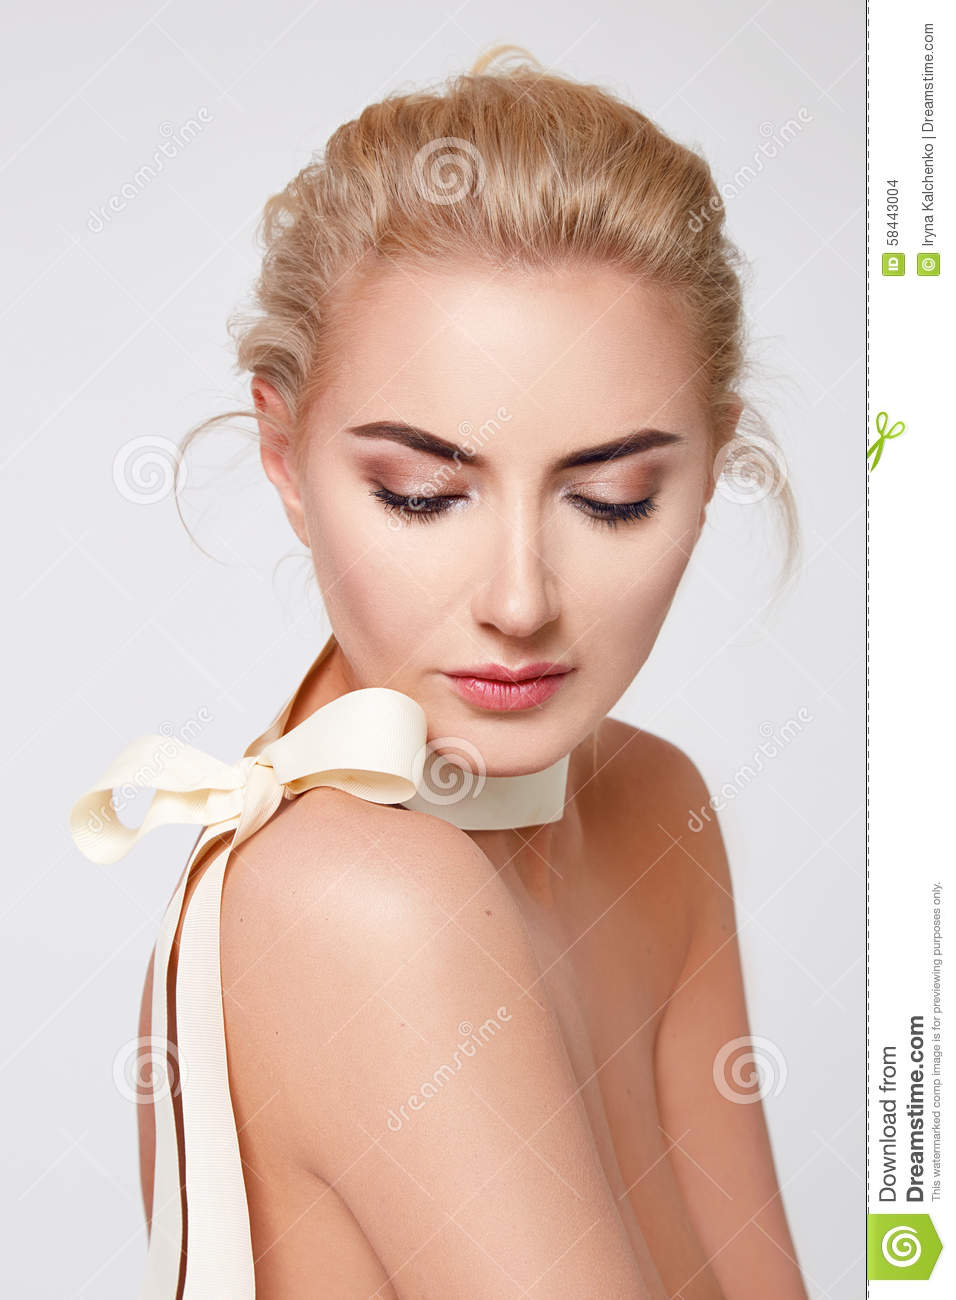 Beautiful Blond Woman Natural Makeup Nude Body Shape Stock Photo - Image 58443004-4241